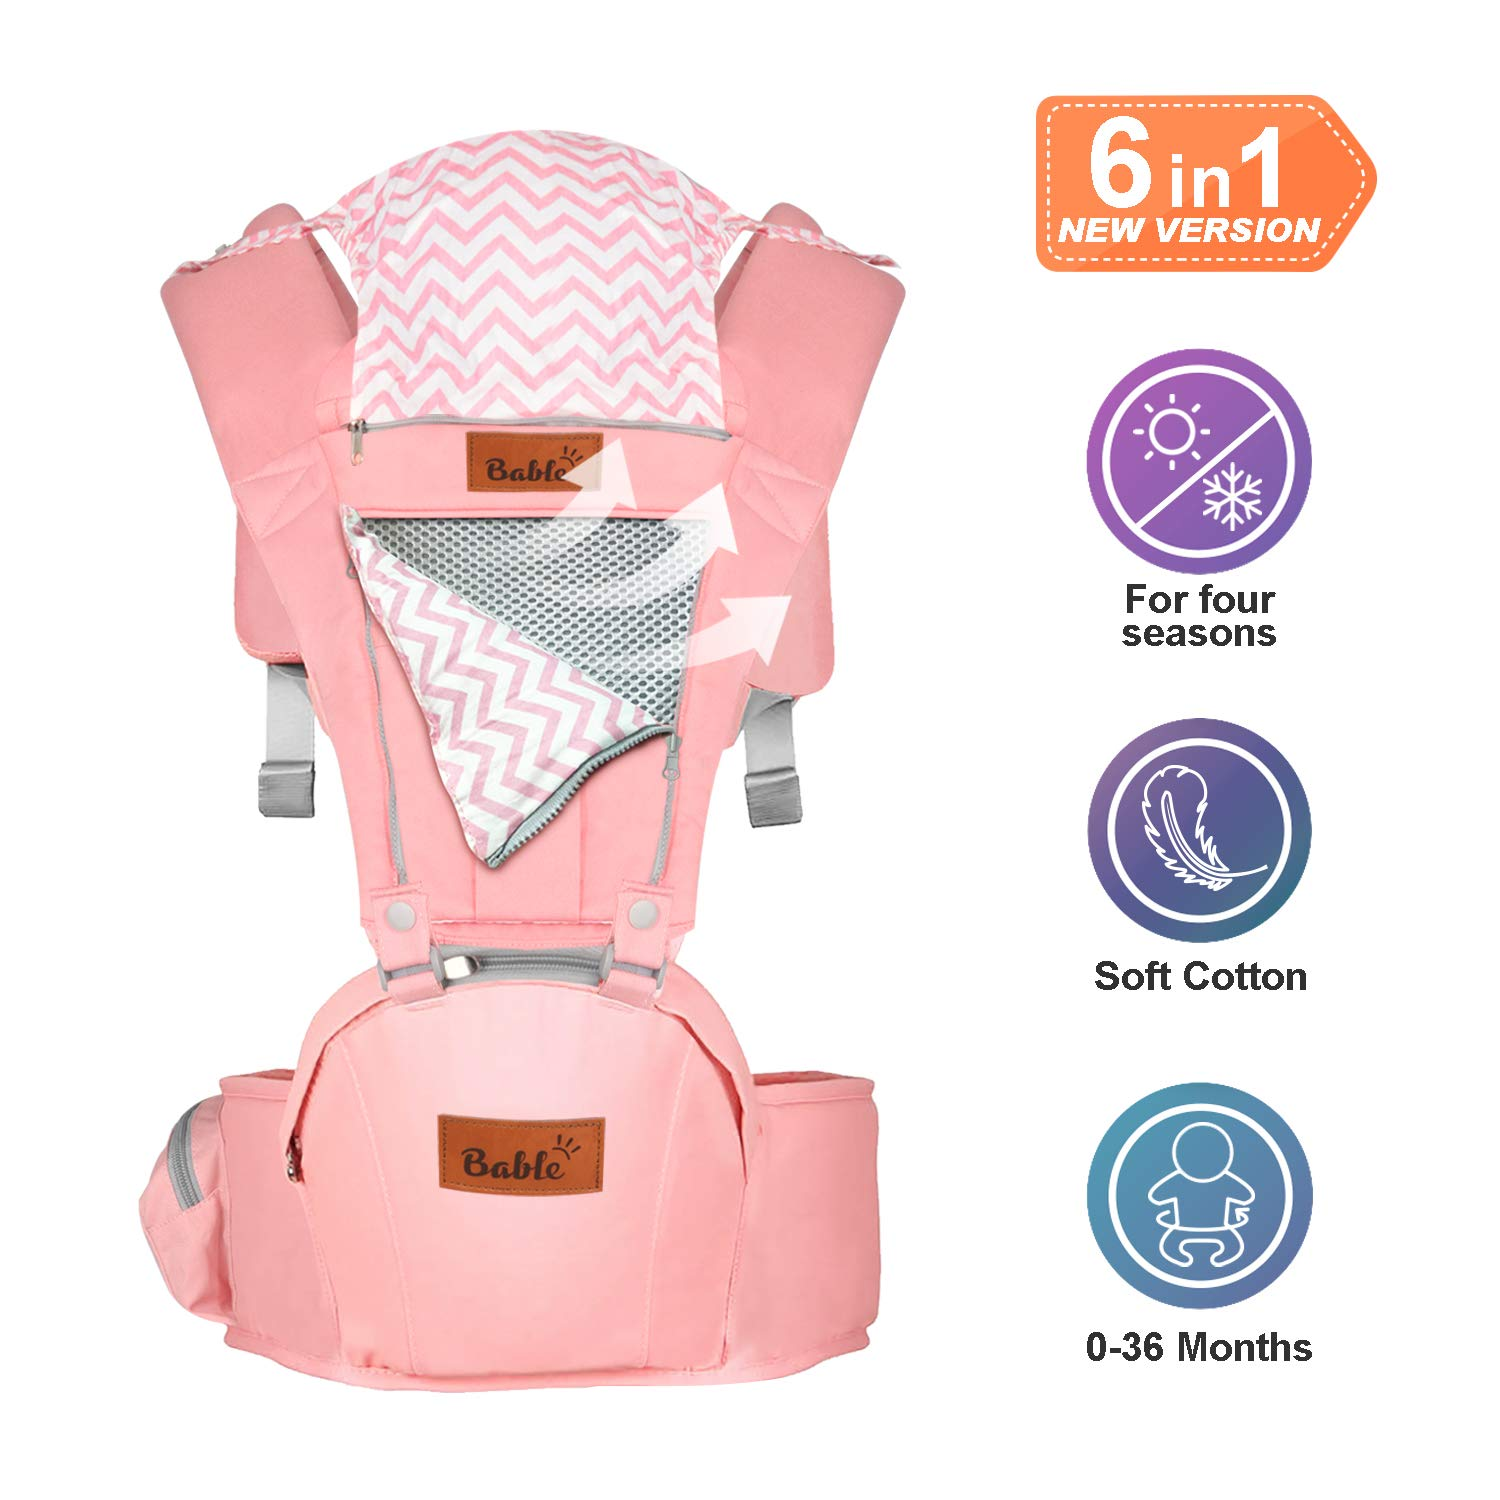 Bable Baby Carrier with Hip Seat, 360 Ergonomic Baby Carrier, Toddler Tush Stool for All Seasons, Soft Baby Sling No Infant Insert Needed - Adapt to Newborn, Infant Hiking Backpack Carrier